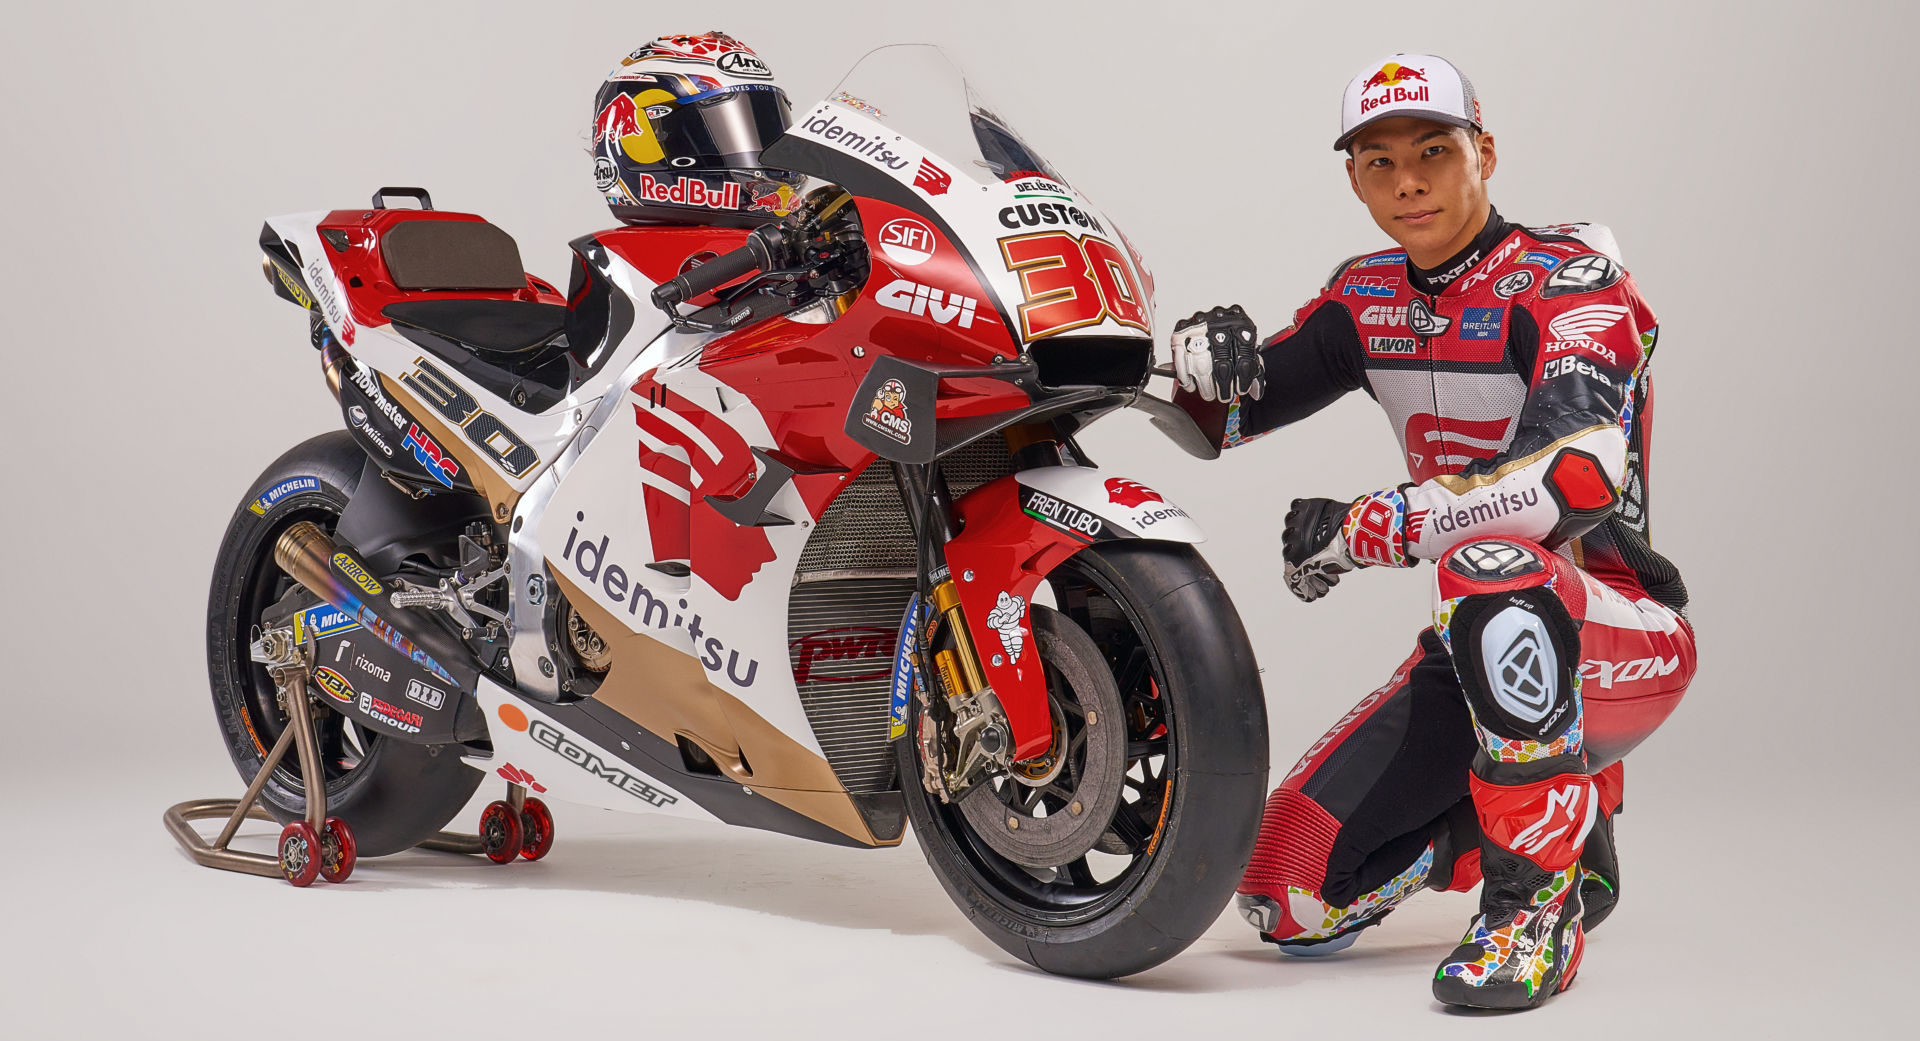 Takaaki Nakagami and his LCR Honda IDEMITSU RC213V. Photo courtesy LCR Honda IDEMITSU.